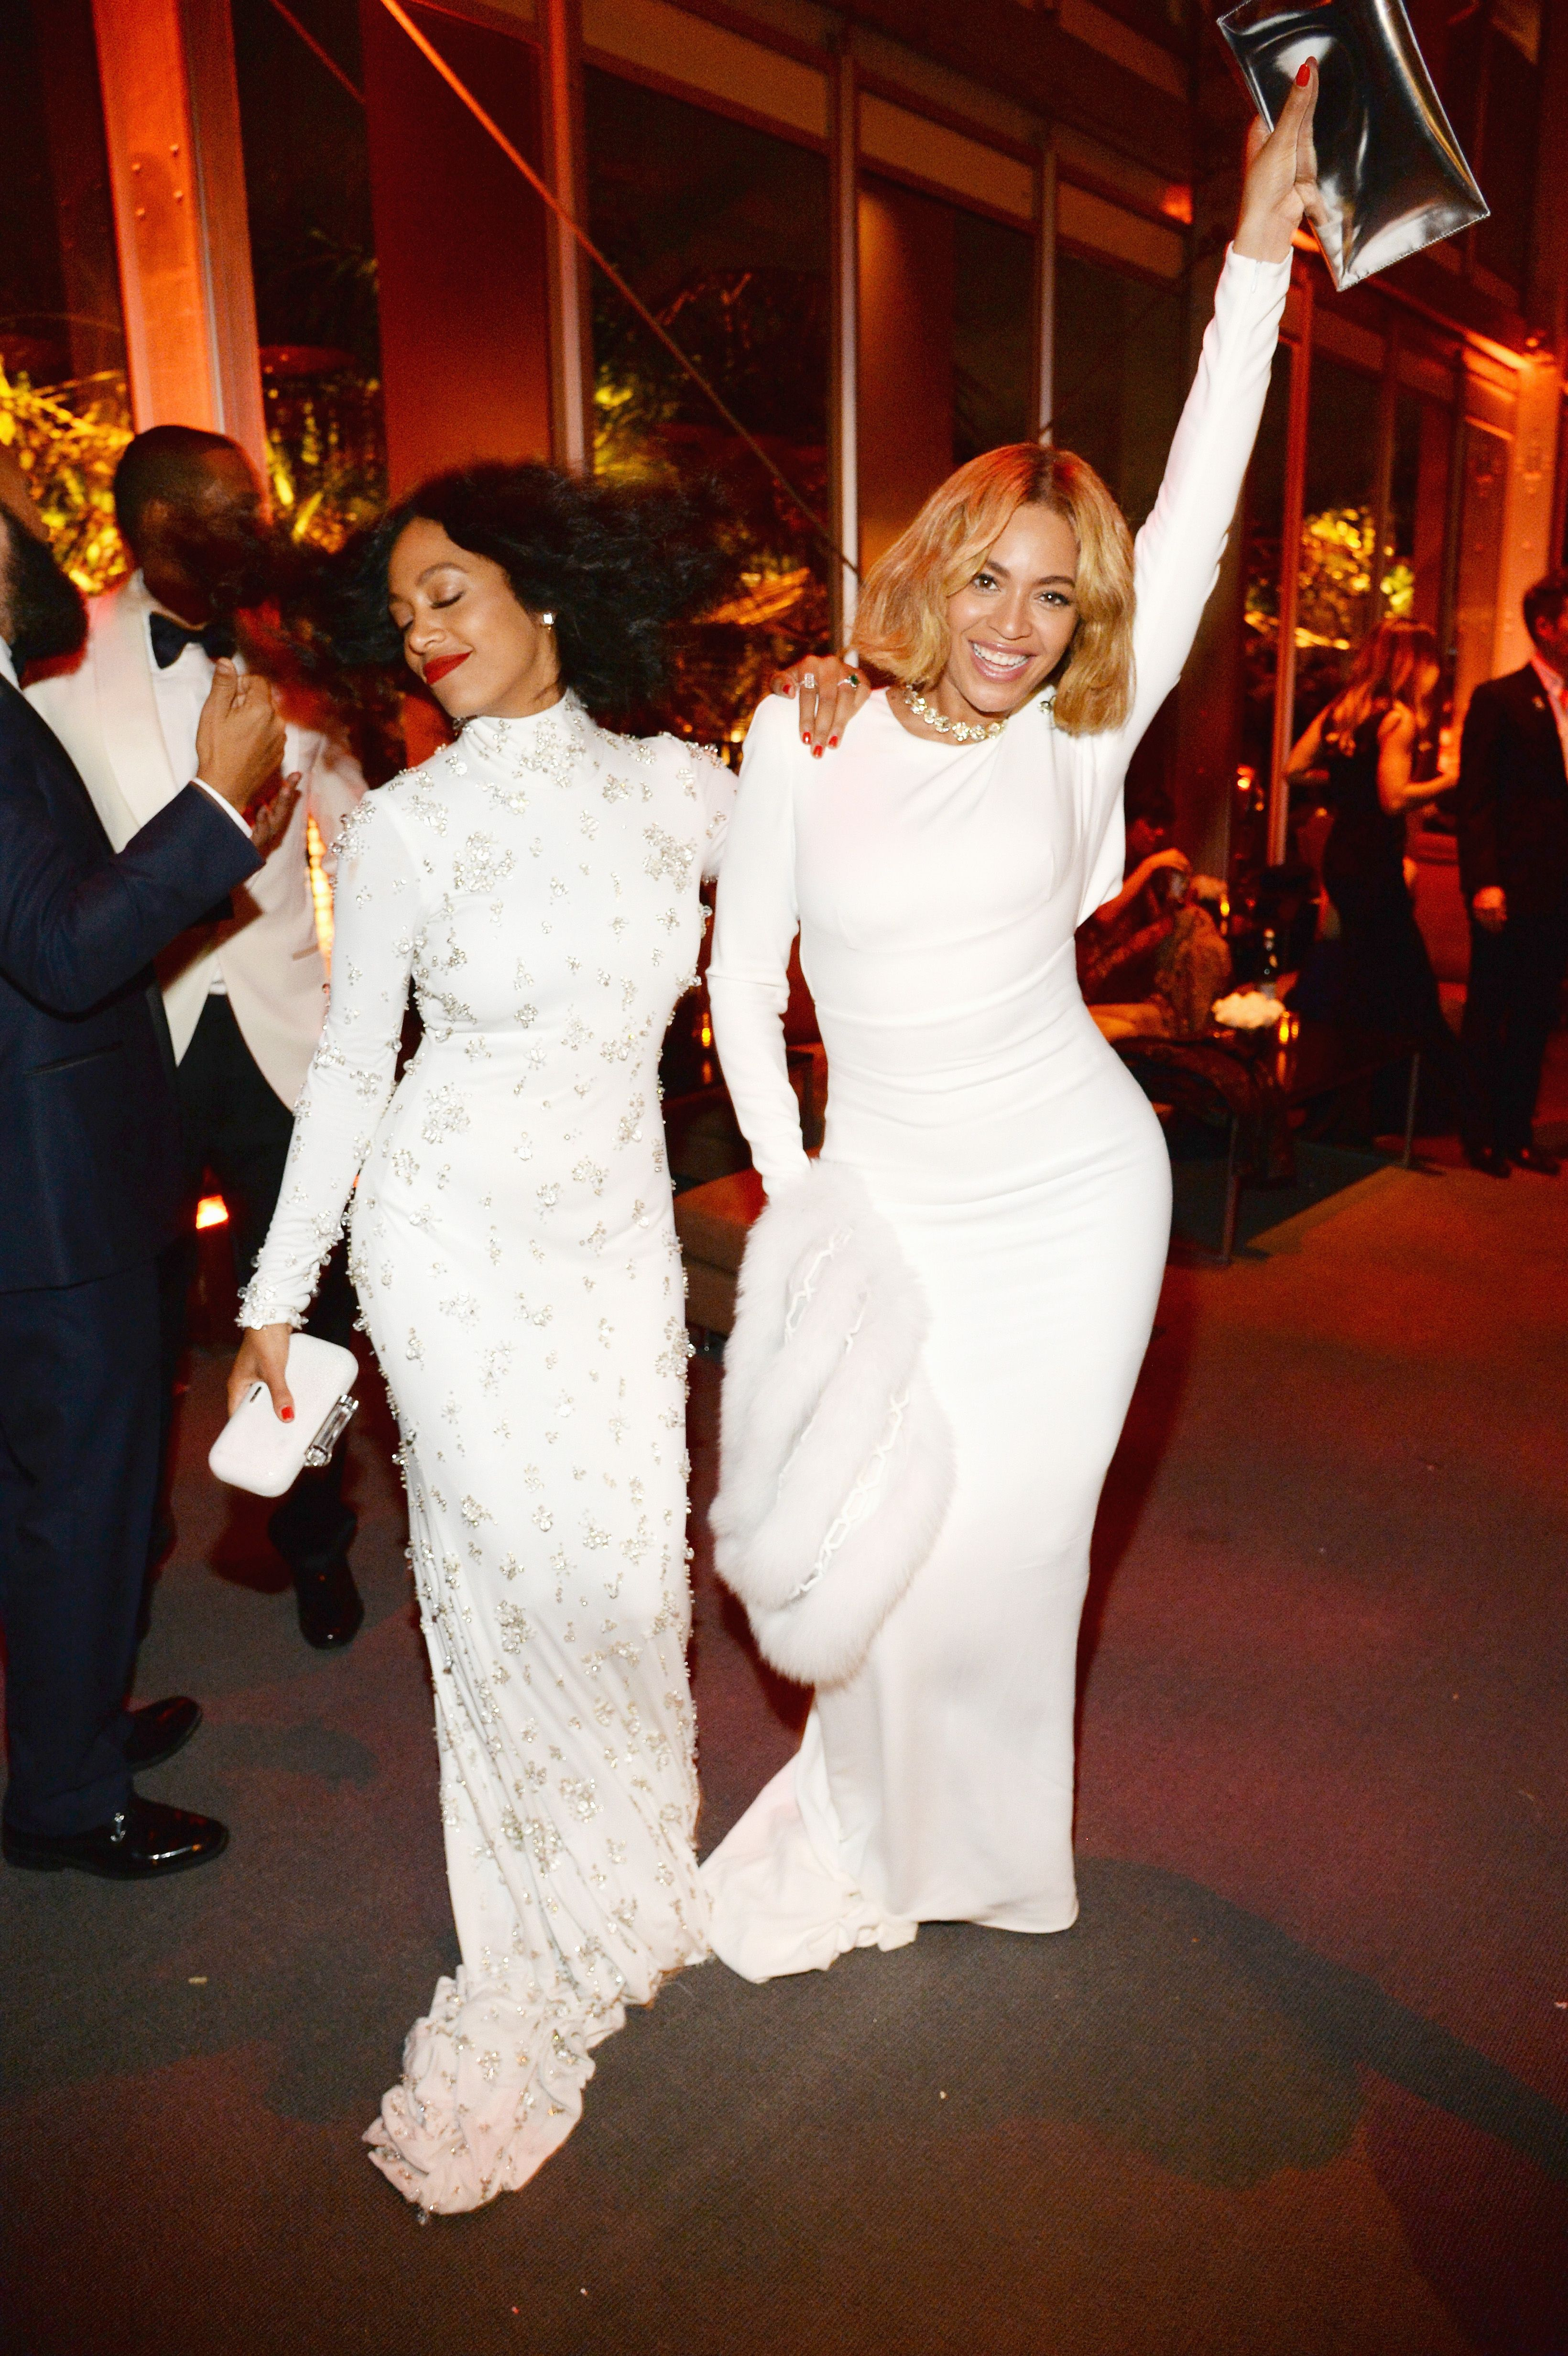 26e017352cbc So Cute: Beyoncé and Solange Wear Matching Dresses to Oscars Party via  @WhoWhatWear